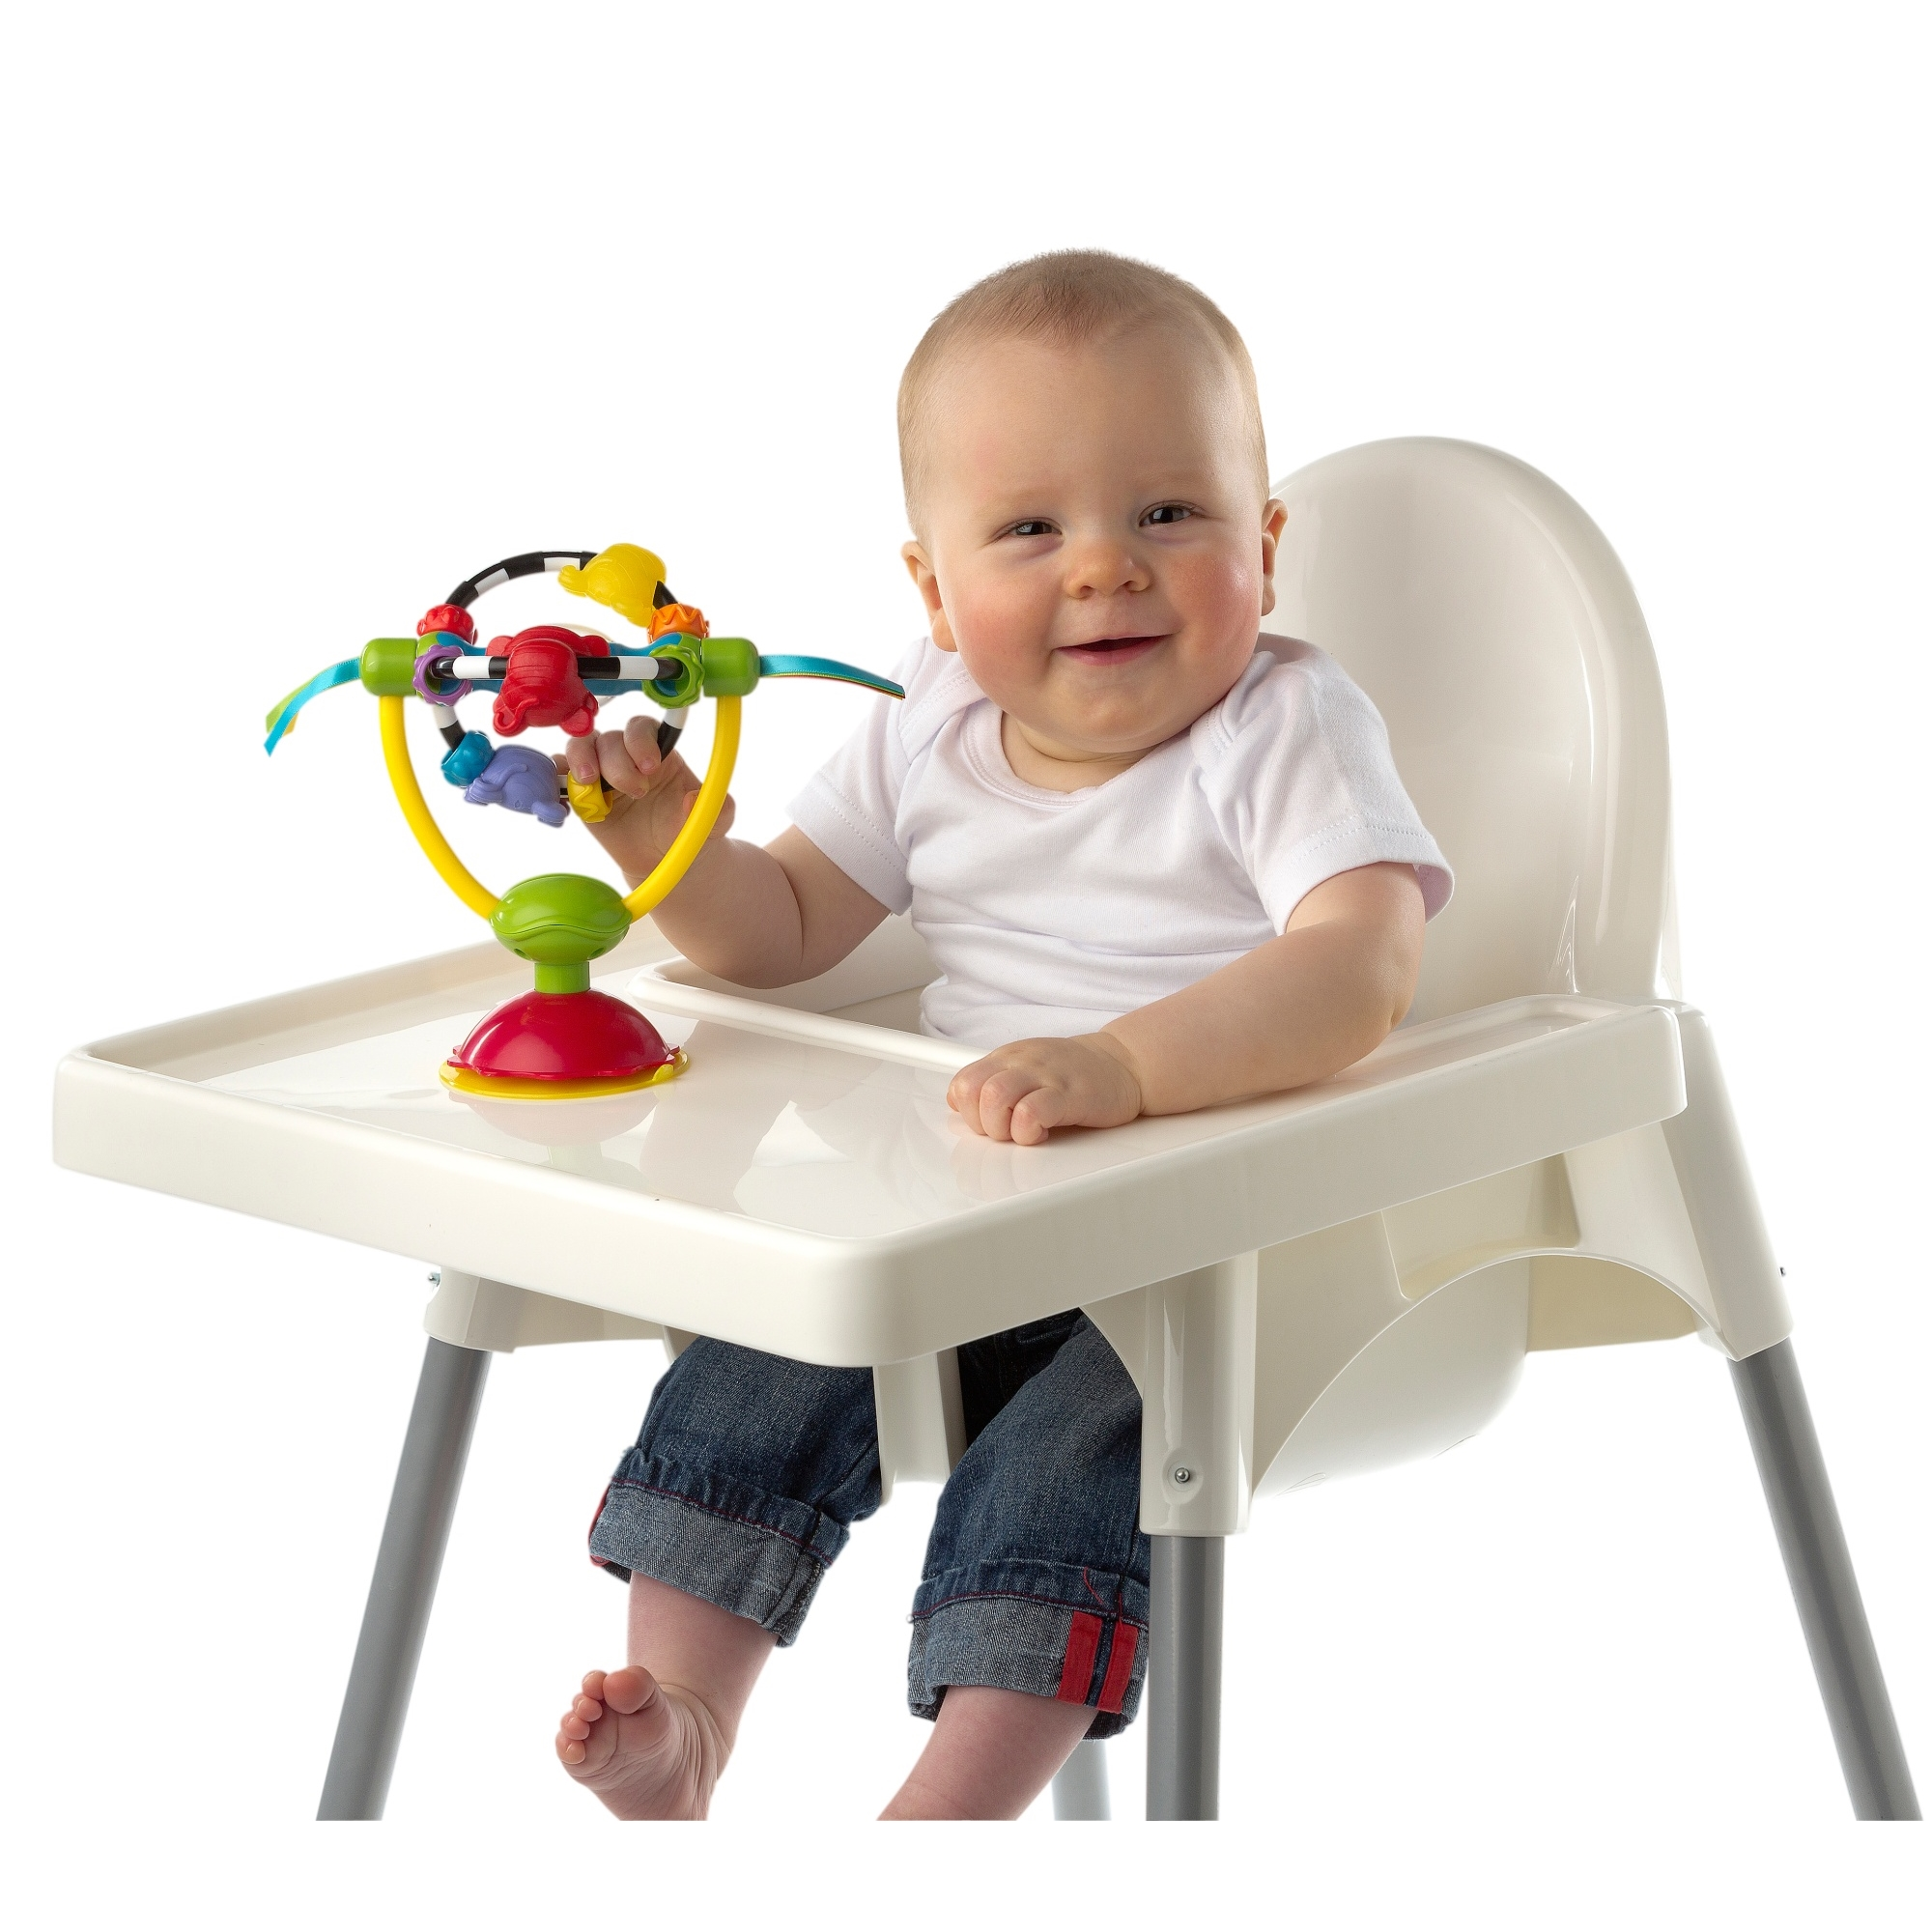 Smyths Toys HQ — Playgro Highchair Spinning Toy